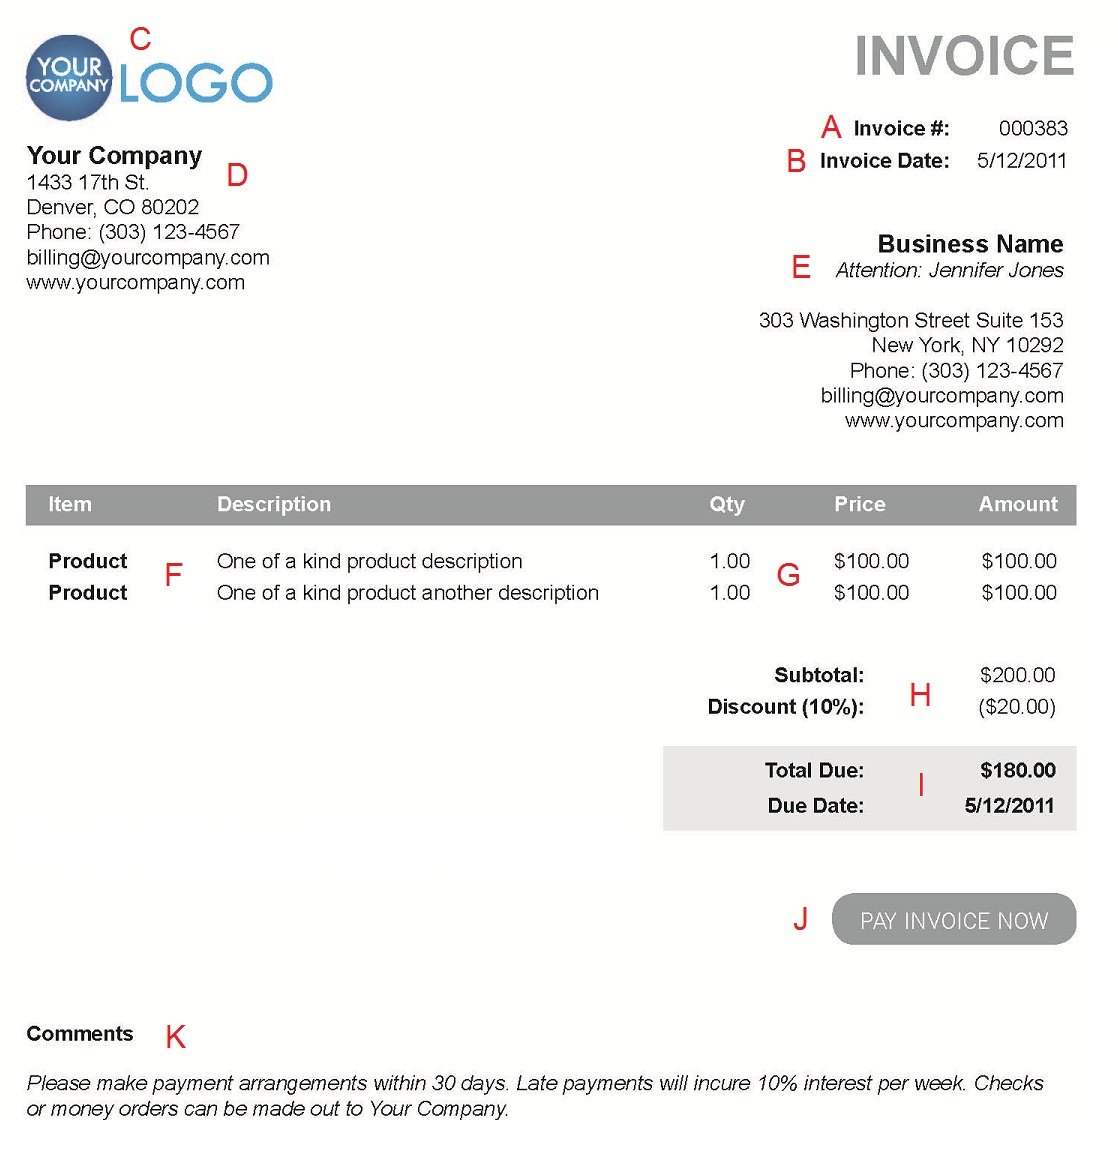 Aaaaeroincus  Winsome The  Different Sections Of An Electronic Payment Invoice With Goodlooking A  With Astonishing Pizza Receipt Also Construction Receipt In Addition Receipt Template Doc And How To Fill Out Certified Mail Receipt As Well As City Of Miami Business Tax Receipt Additionally I Receipt Notice From Paysimplecom With Aaaaeroincus  Goodlooking The  Different Sections Of An Electronic Payment Invoice With Astonishing A  And Winsome Pizza Receipt Also Construction Receipt In Addition Receipt Template Doc From Paysimplecom